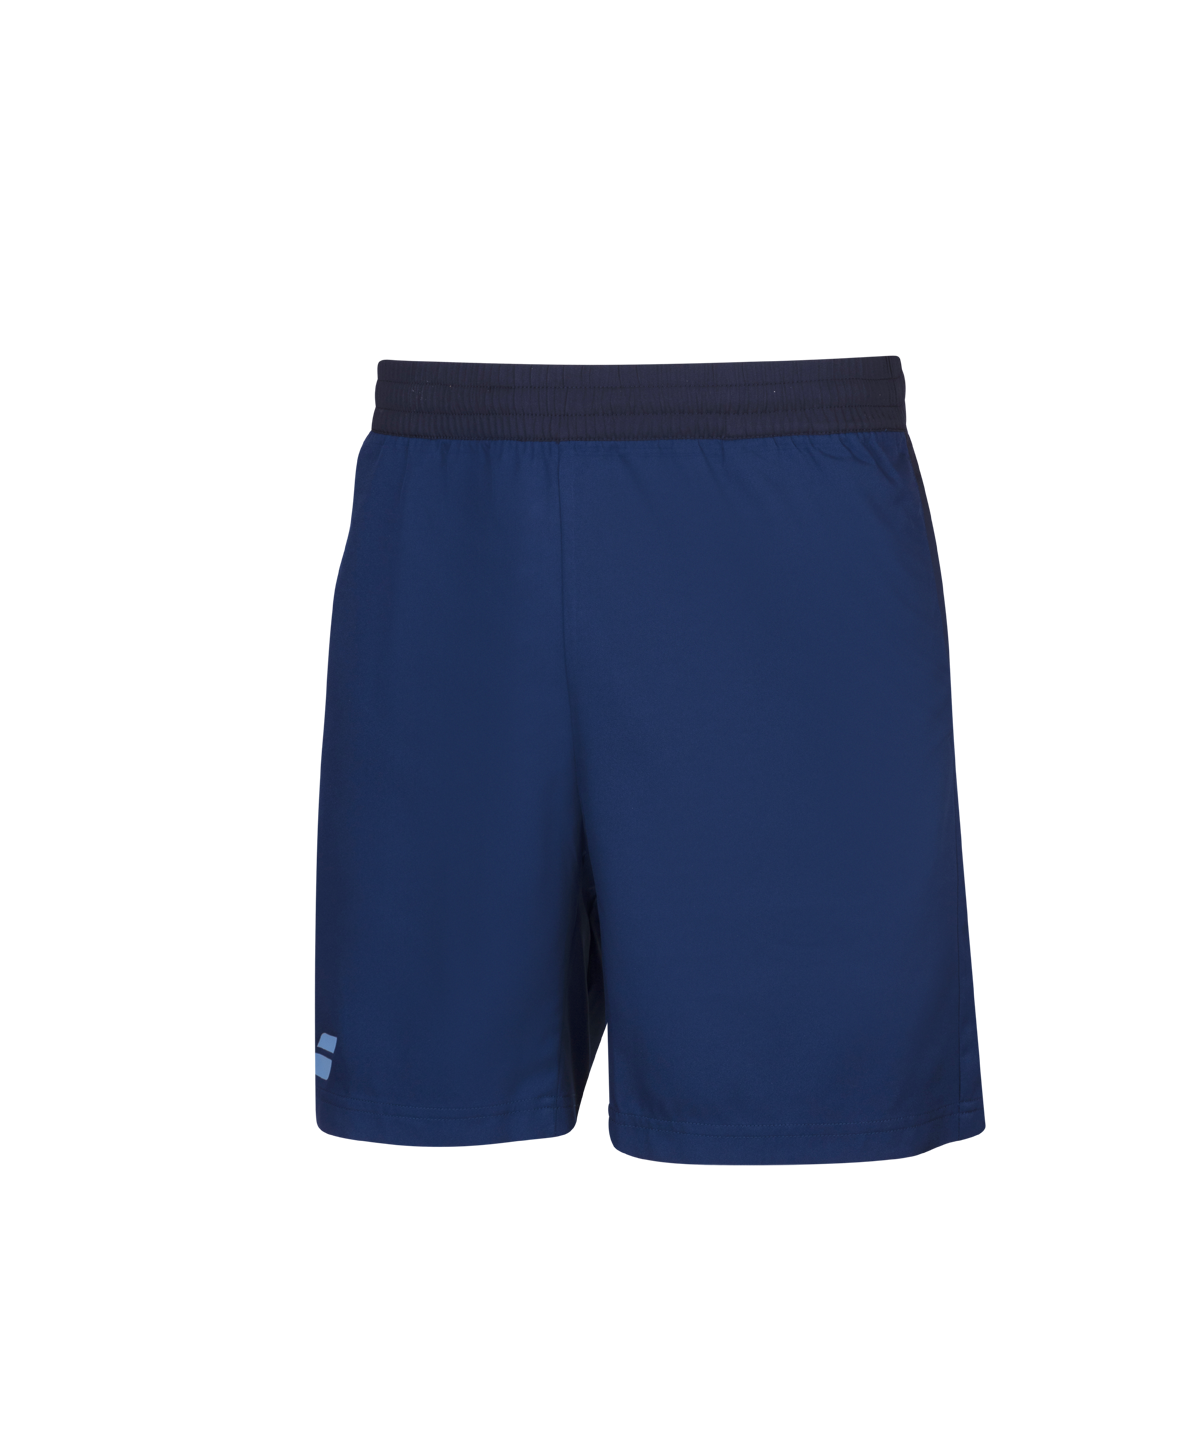 Short Babolat Play Boy - bleu marine